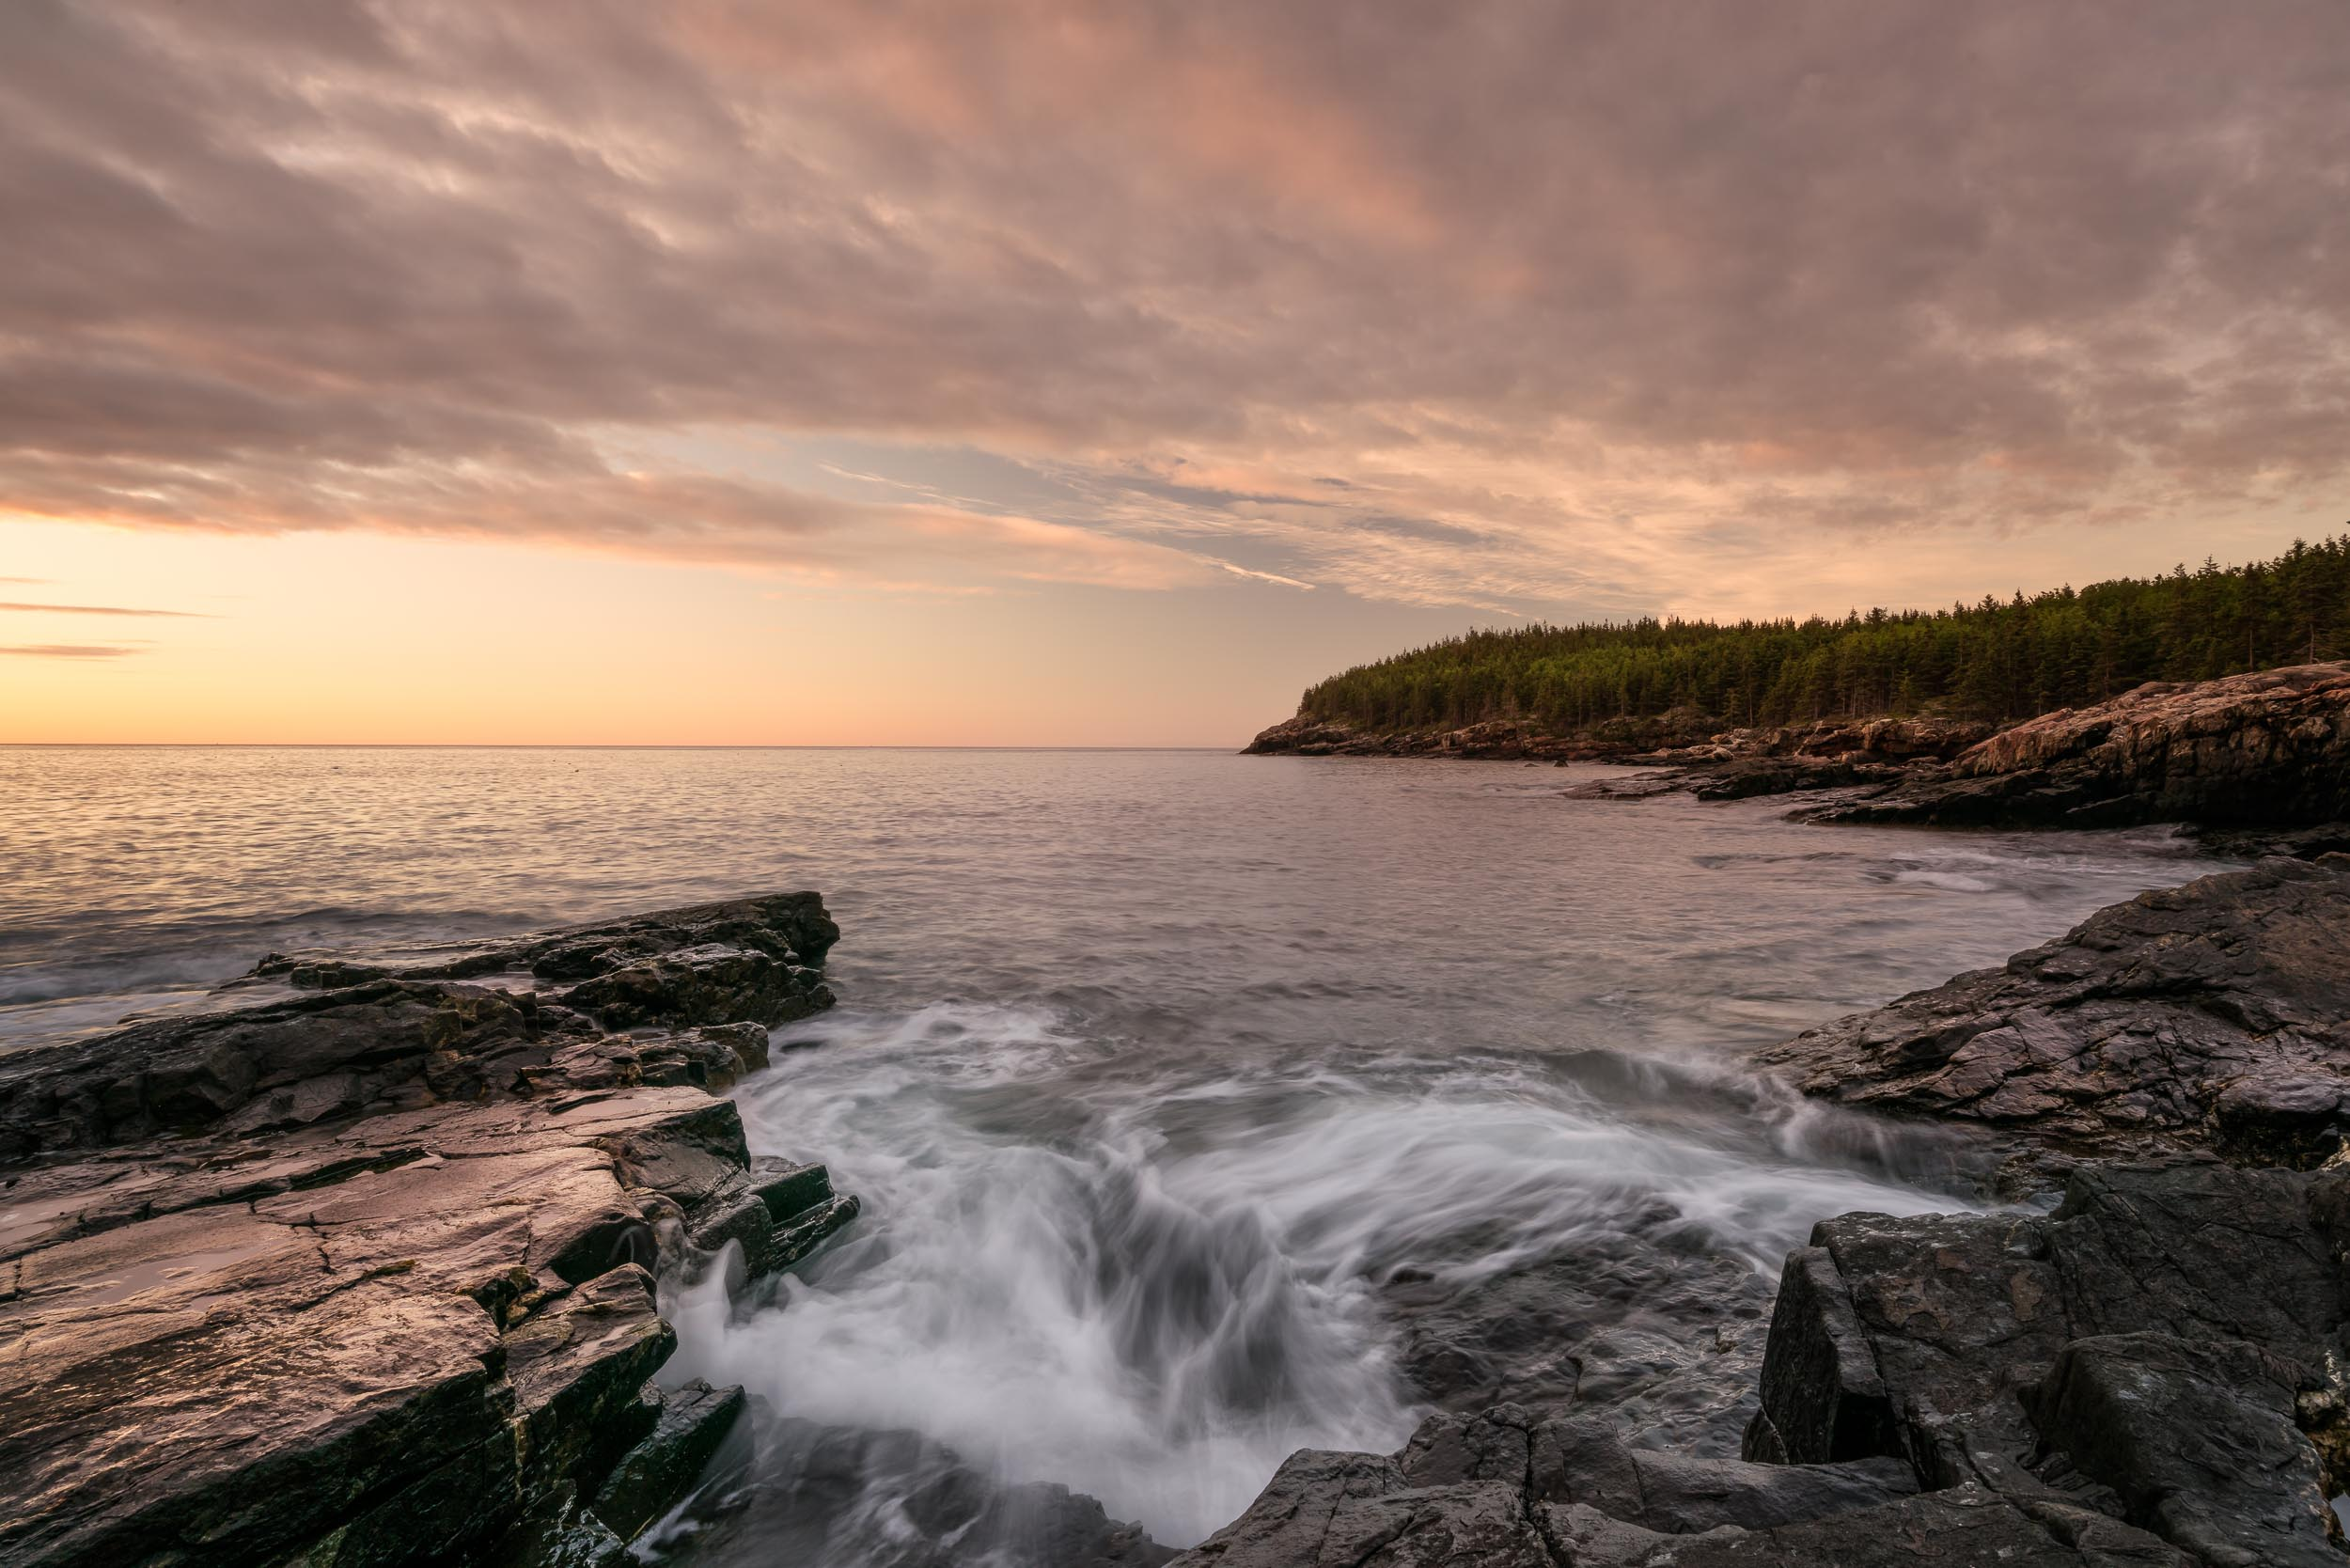 0.4 seconds for the water to climb the rocks in Acadia National Park.